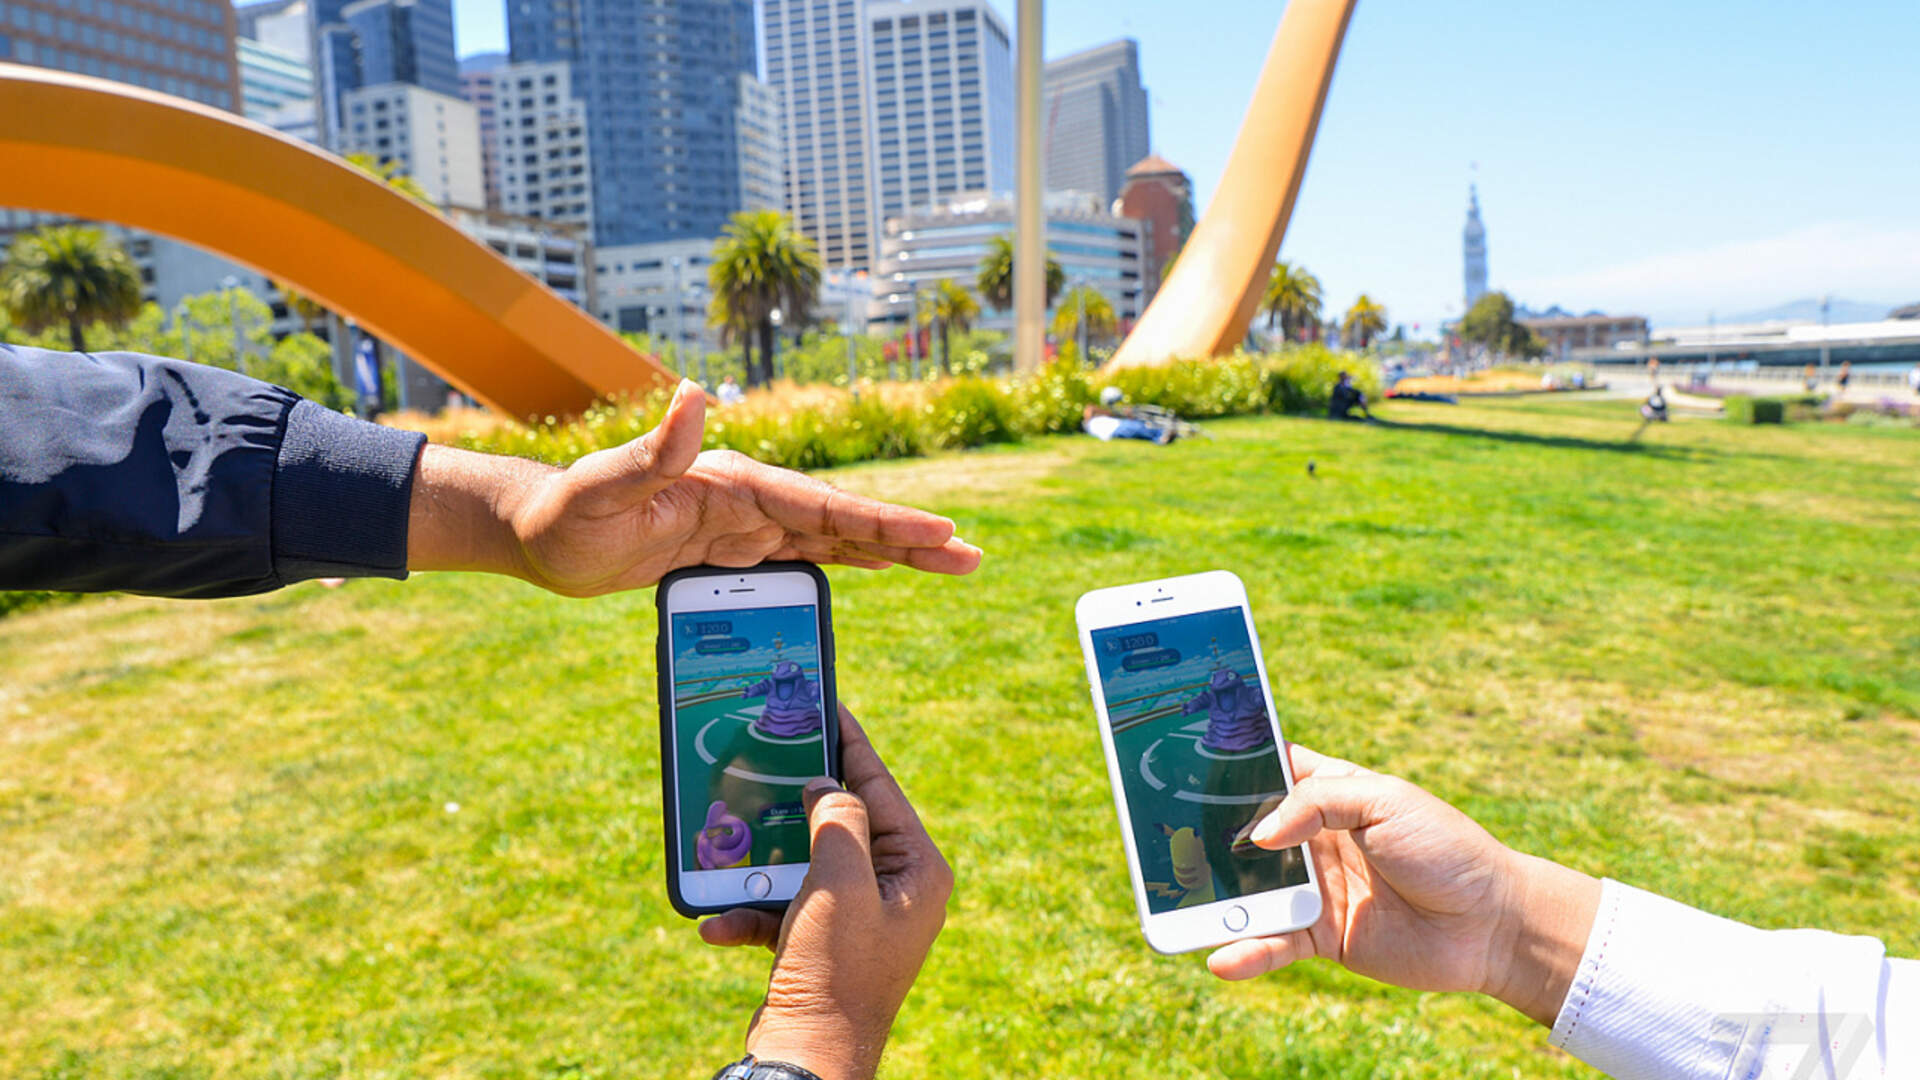 Pokemon Go Players Will Keep Playing Because After 21 Years They Still Want to Catch Them All